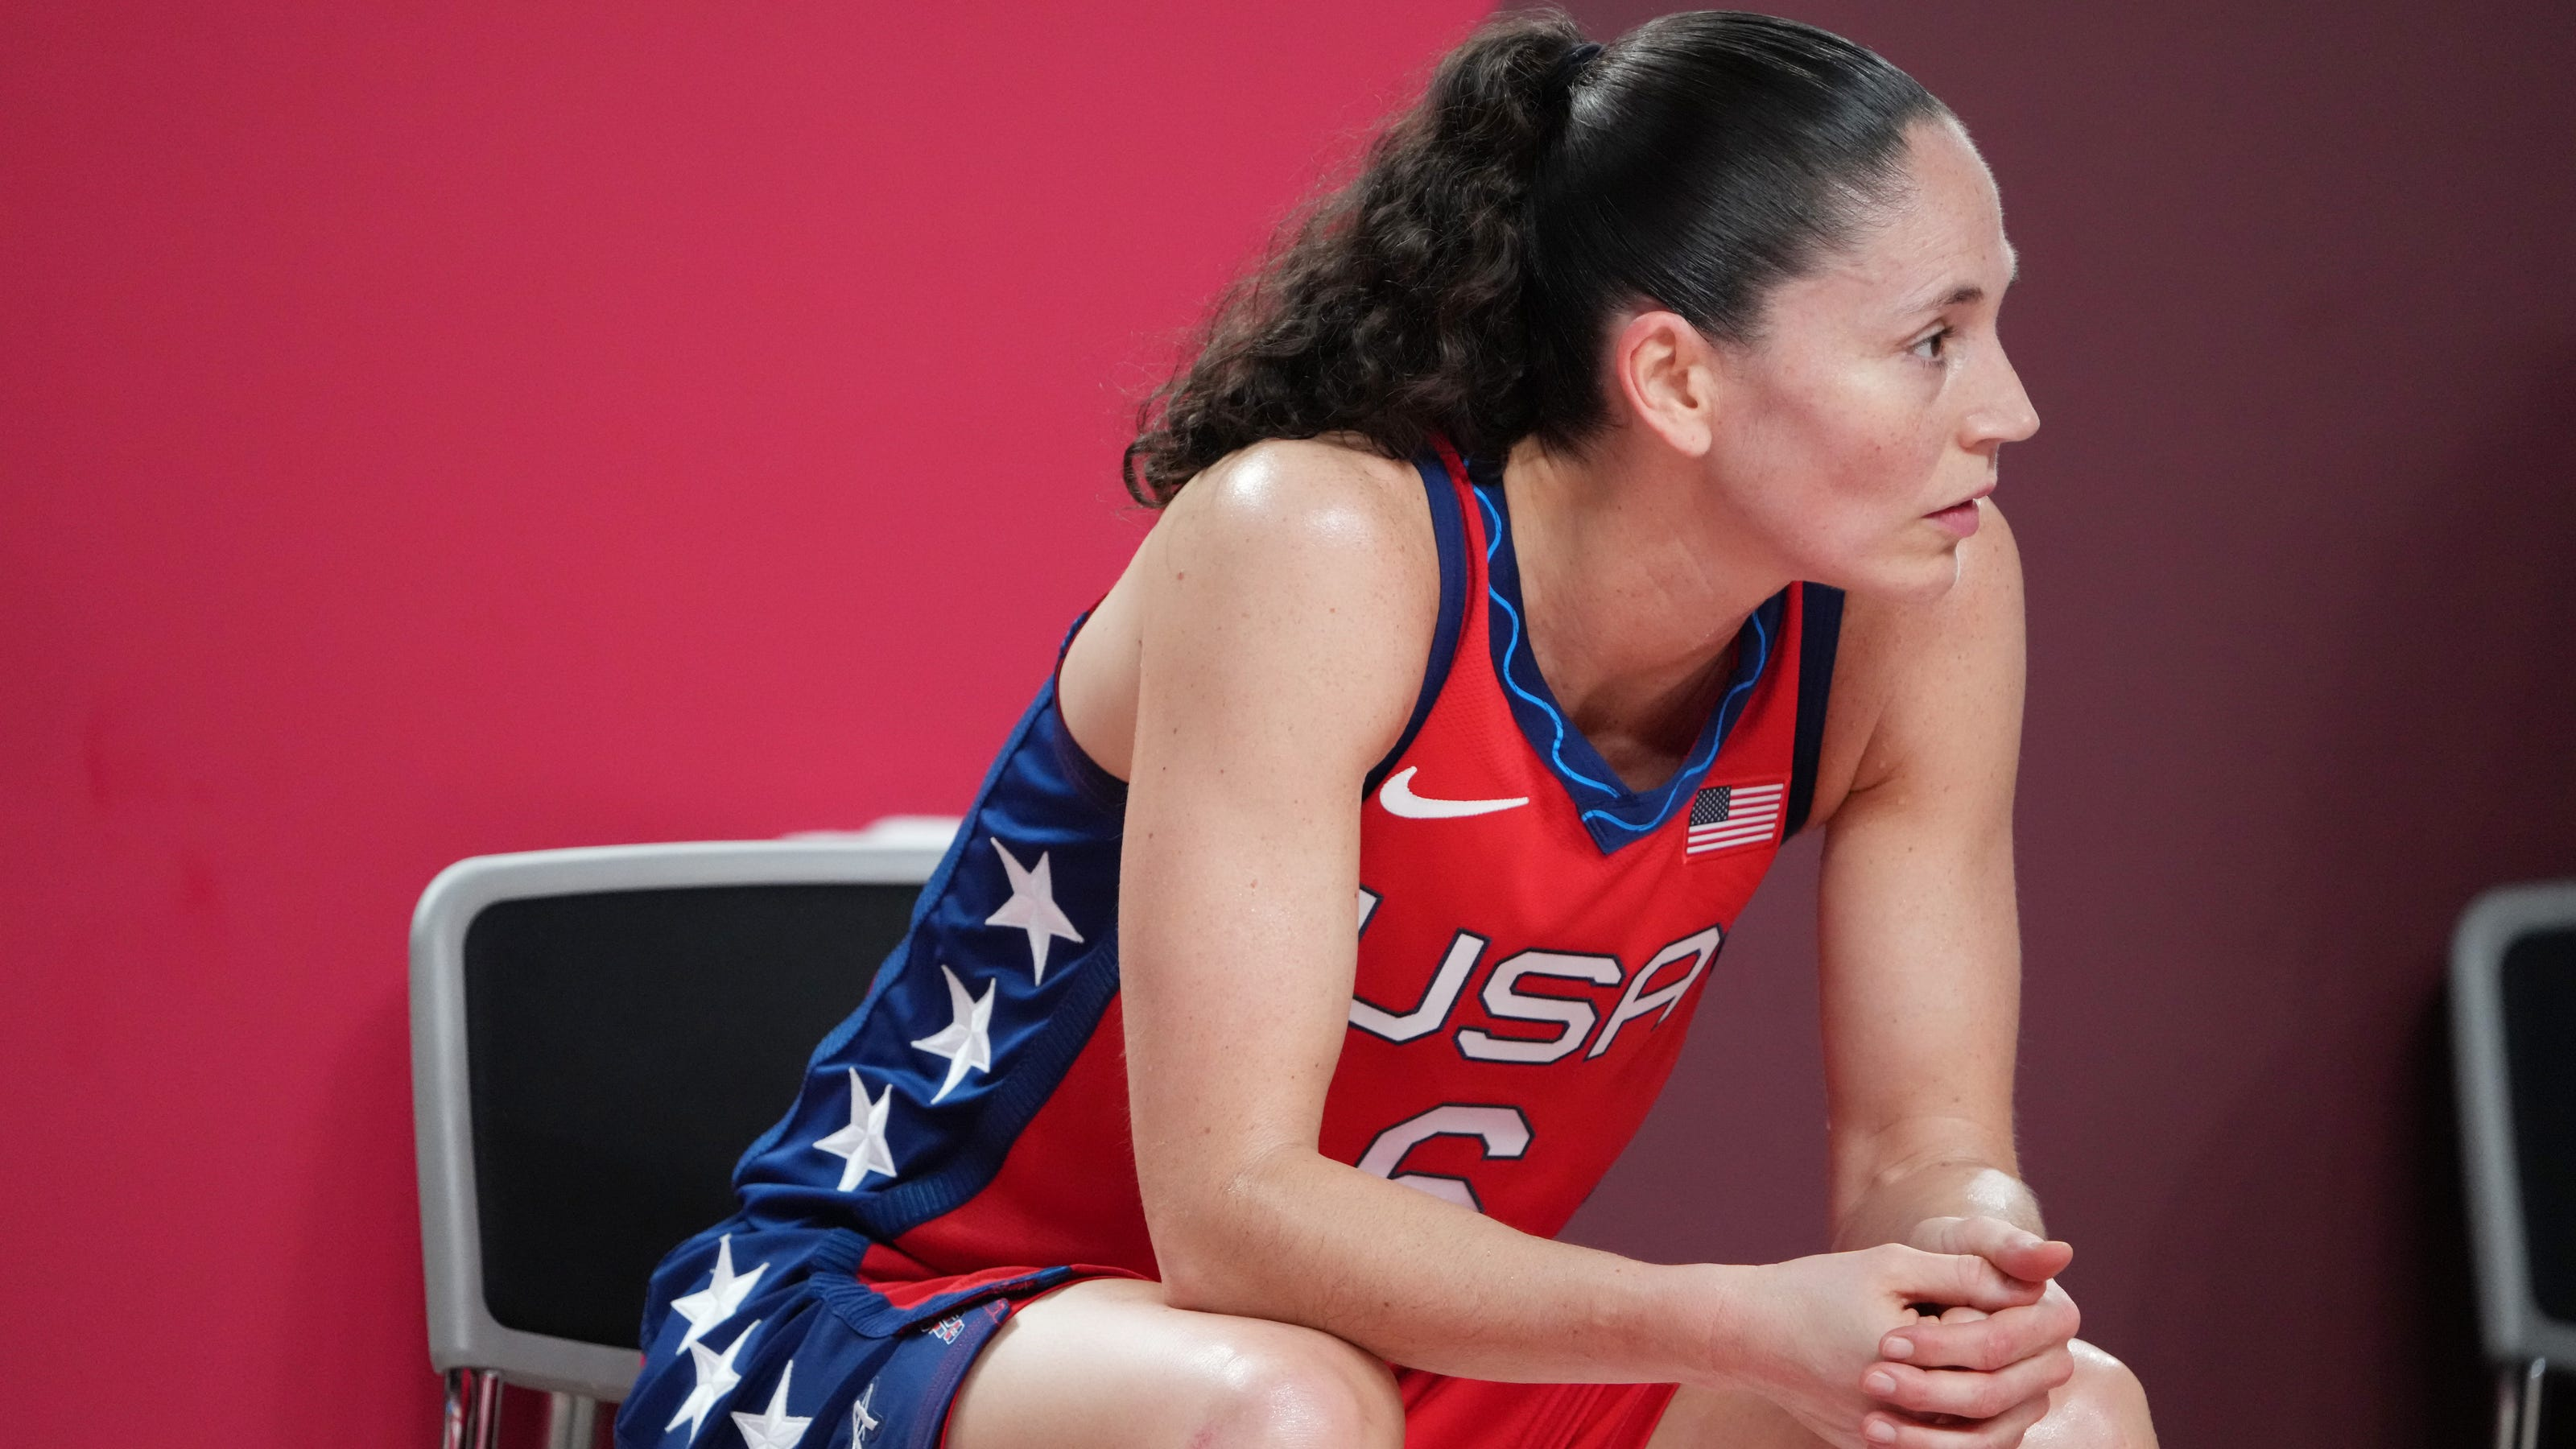 Opinion: Opener shows path to Olympic gold will not be a breeze for U.S. women's basketball team